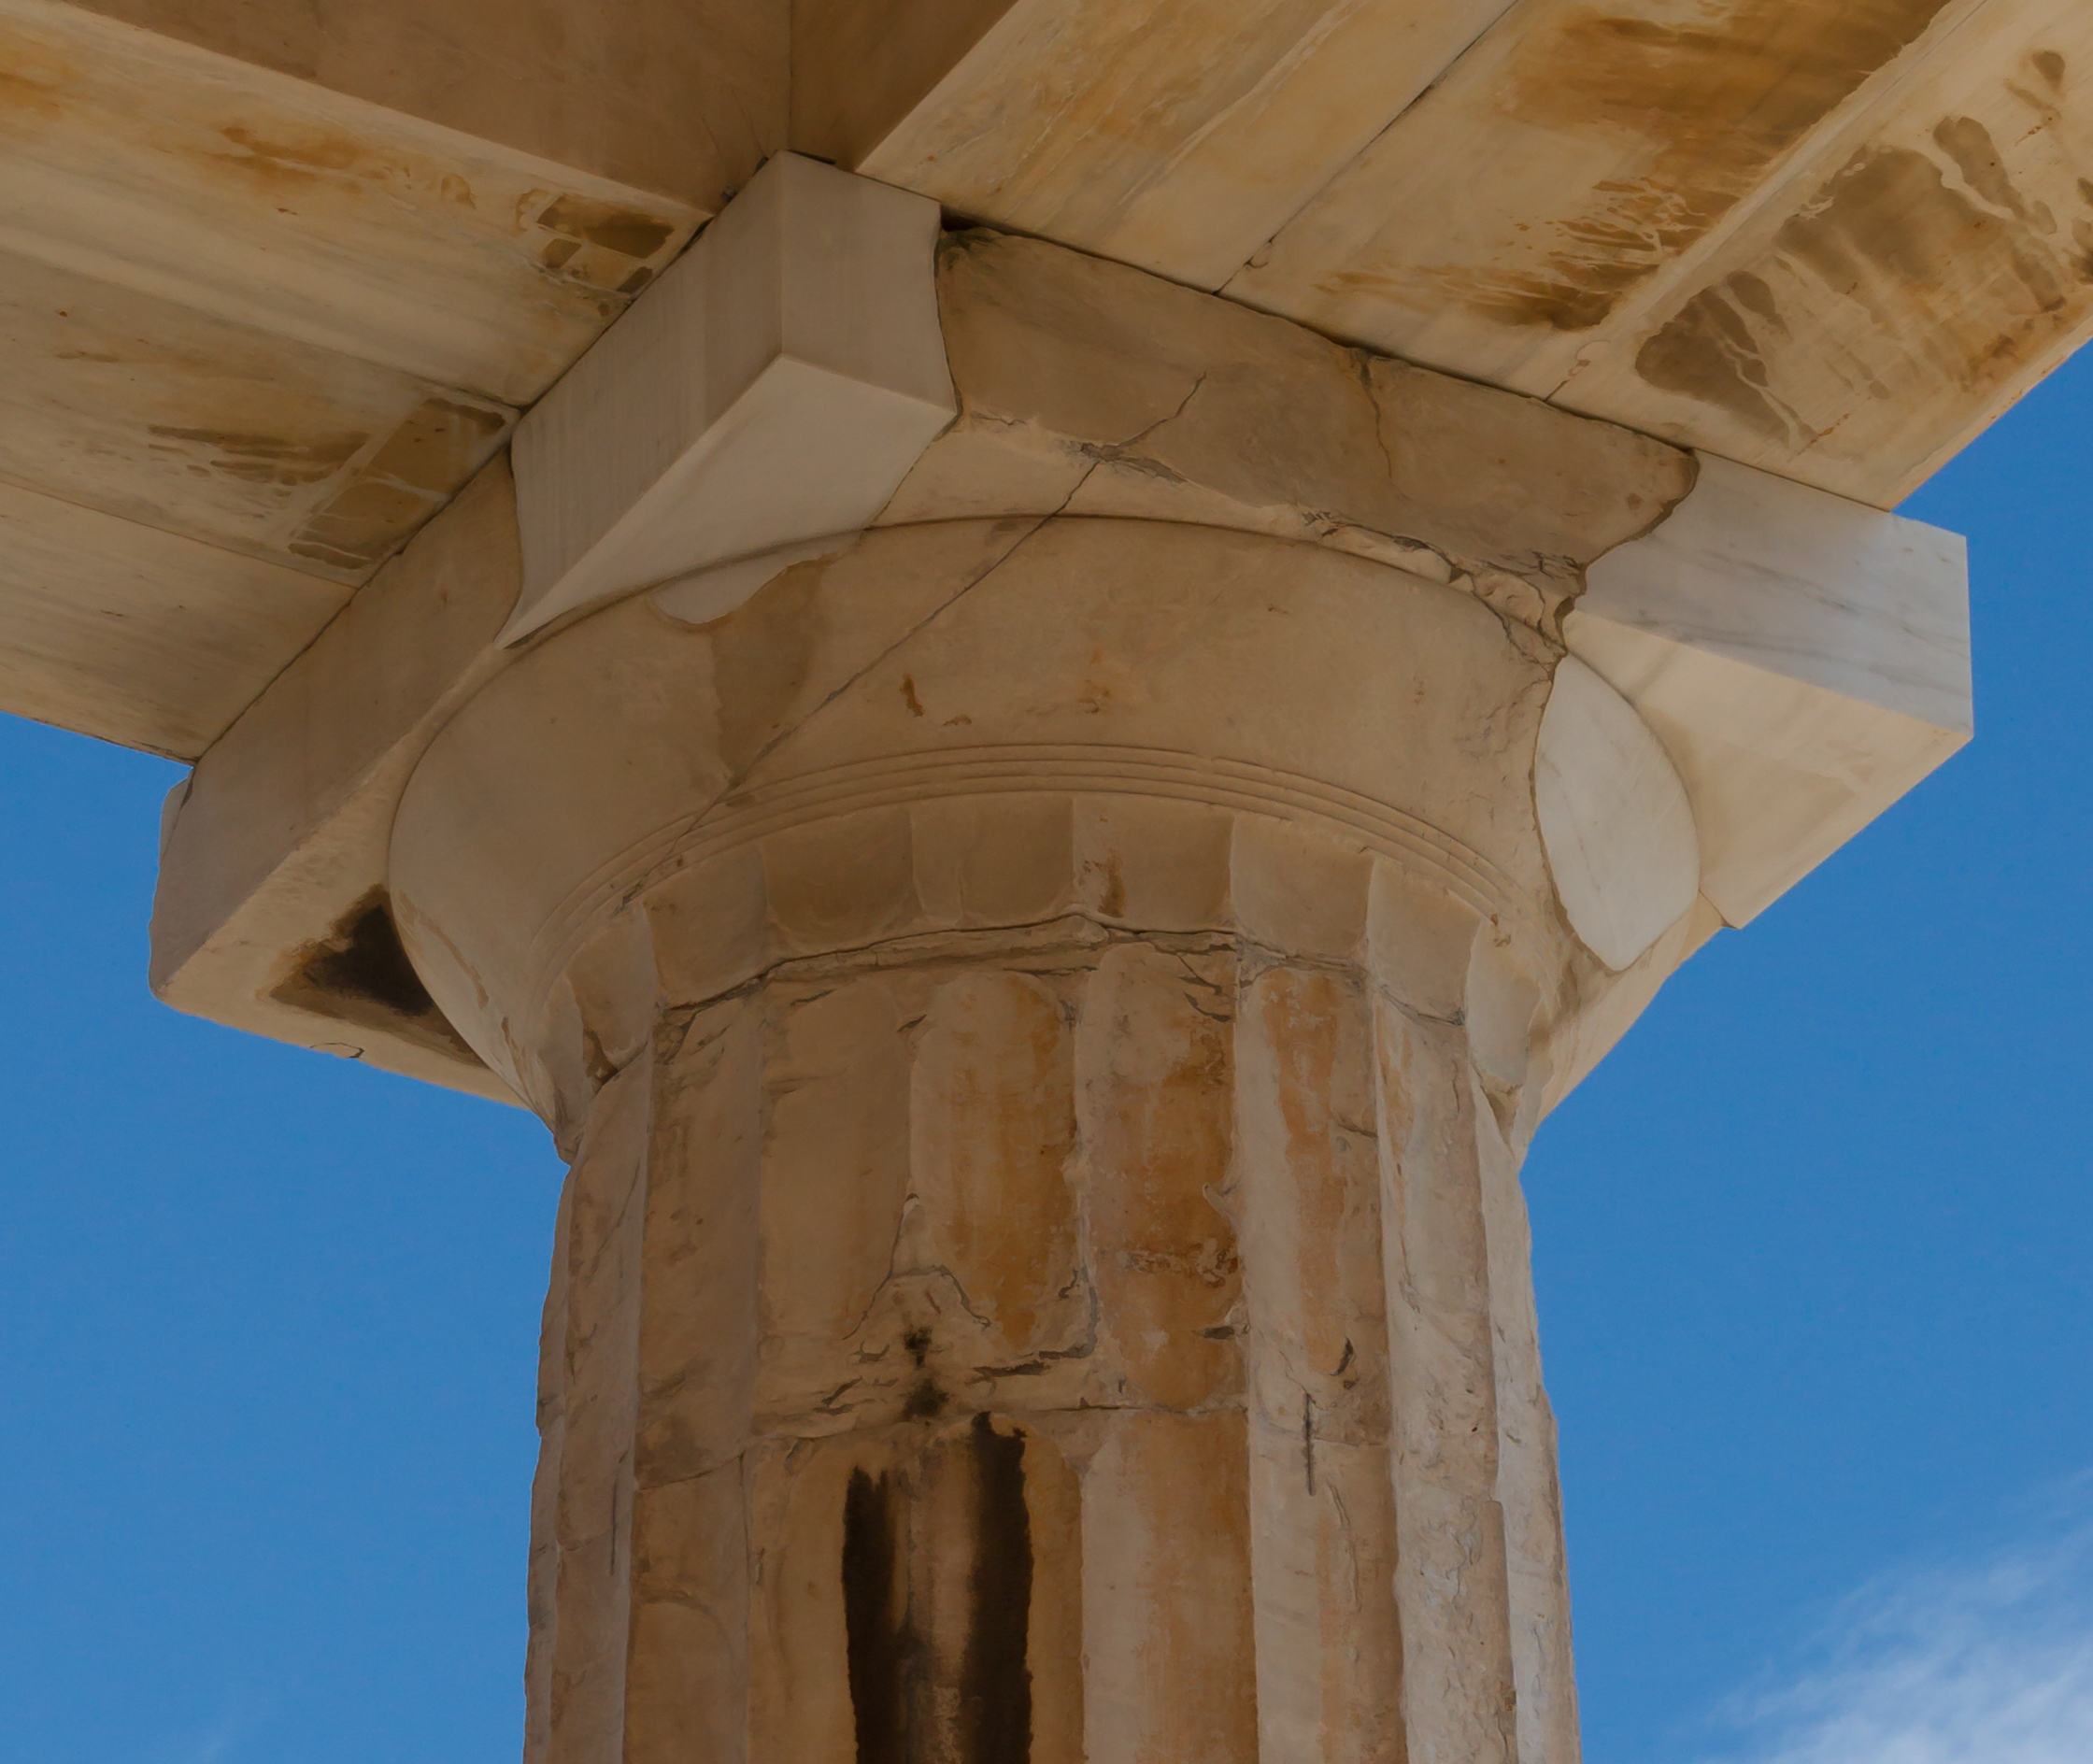 Doric column inside Parthenon Acropolis Athens Greece